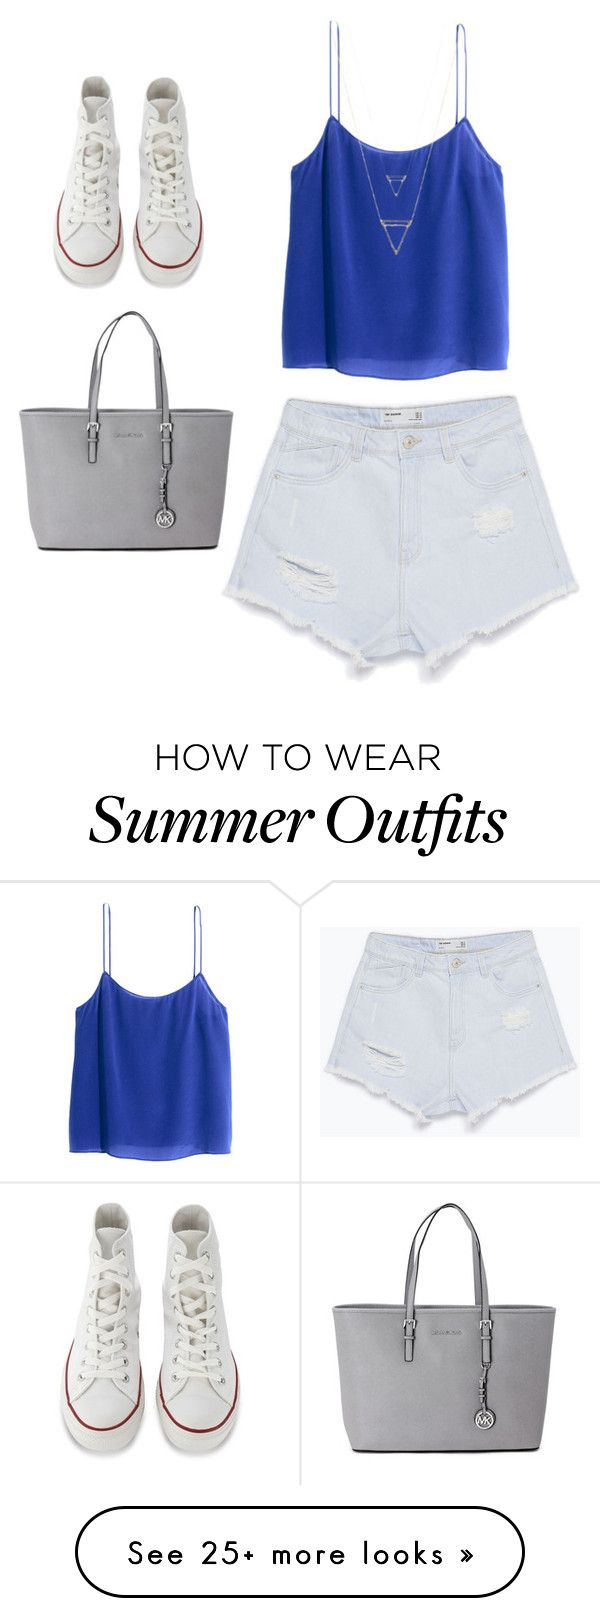 """""""Cute trendy outfit for summer!!!!"""" by dani-franco on Polyvore featuring H&M, Zara, Converse and Michael Kors"""